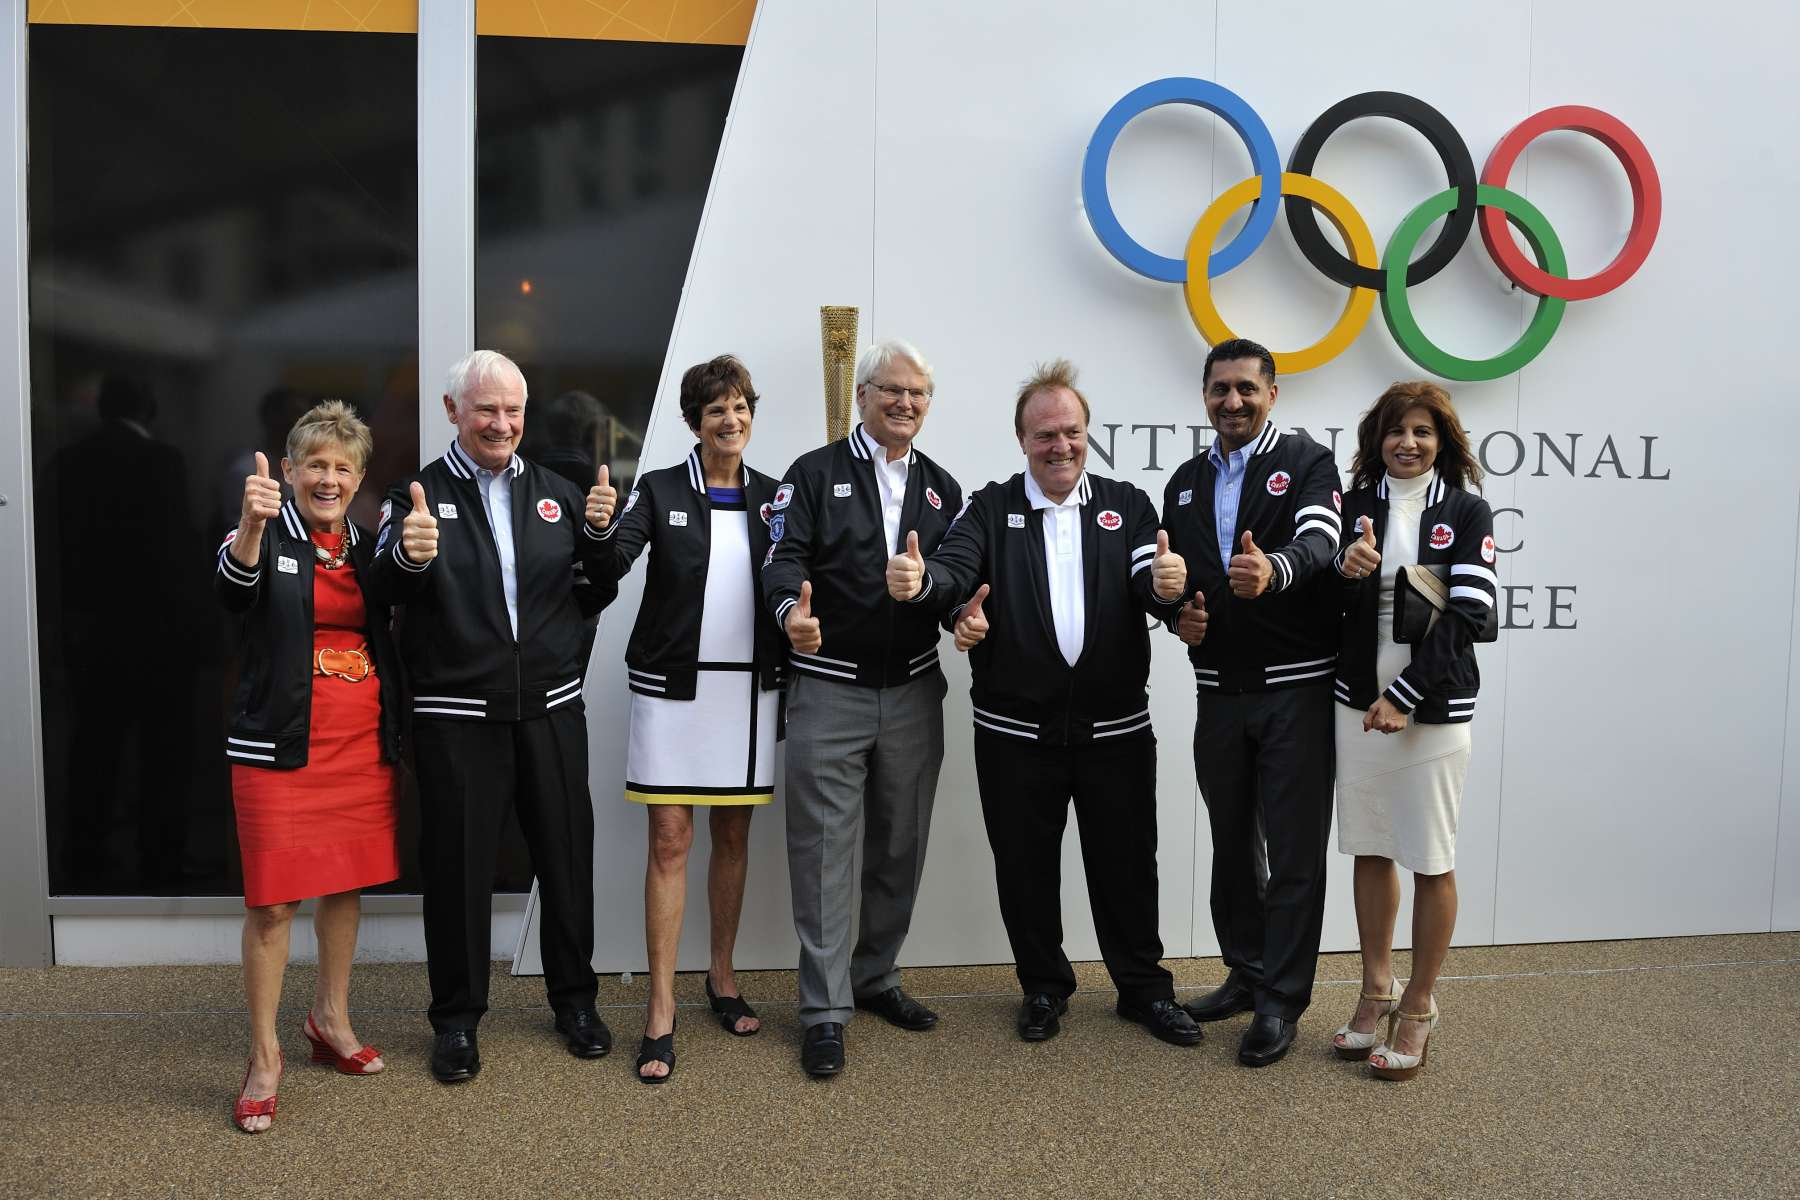 During their visit to the Olympic Village, Their Excellencies were accompanied by (from right to left) the Honourable Bal Gosal, Minister of State (Sport), and Mrs. Pawanjit Gosal, Mr. Marcel Aubut, President of the COC, Gordon Campbell, High Commissioner for Canada, and Mrs. Nancy Campbell. They were presented with a Team Canada Athletes' Podium Replica Jackets by Mr. Aubut.